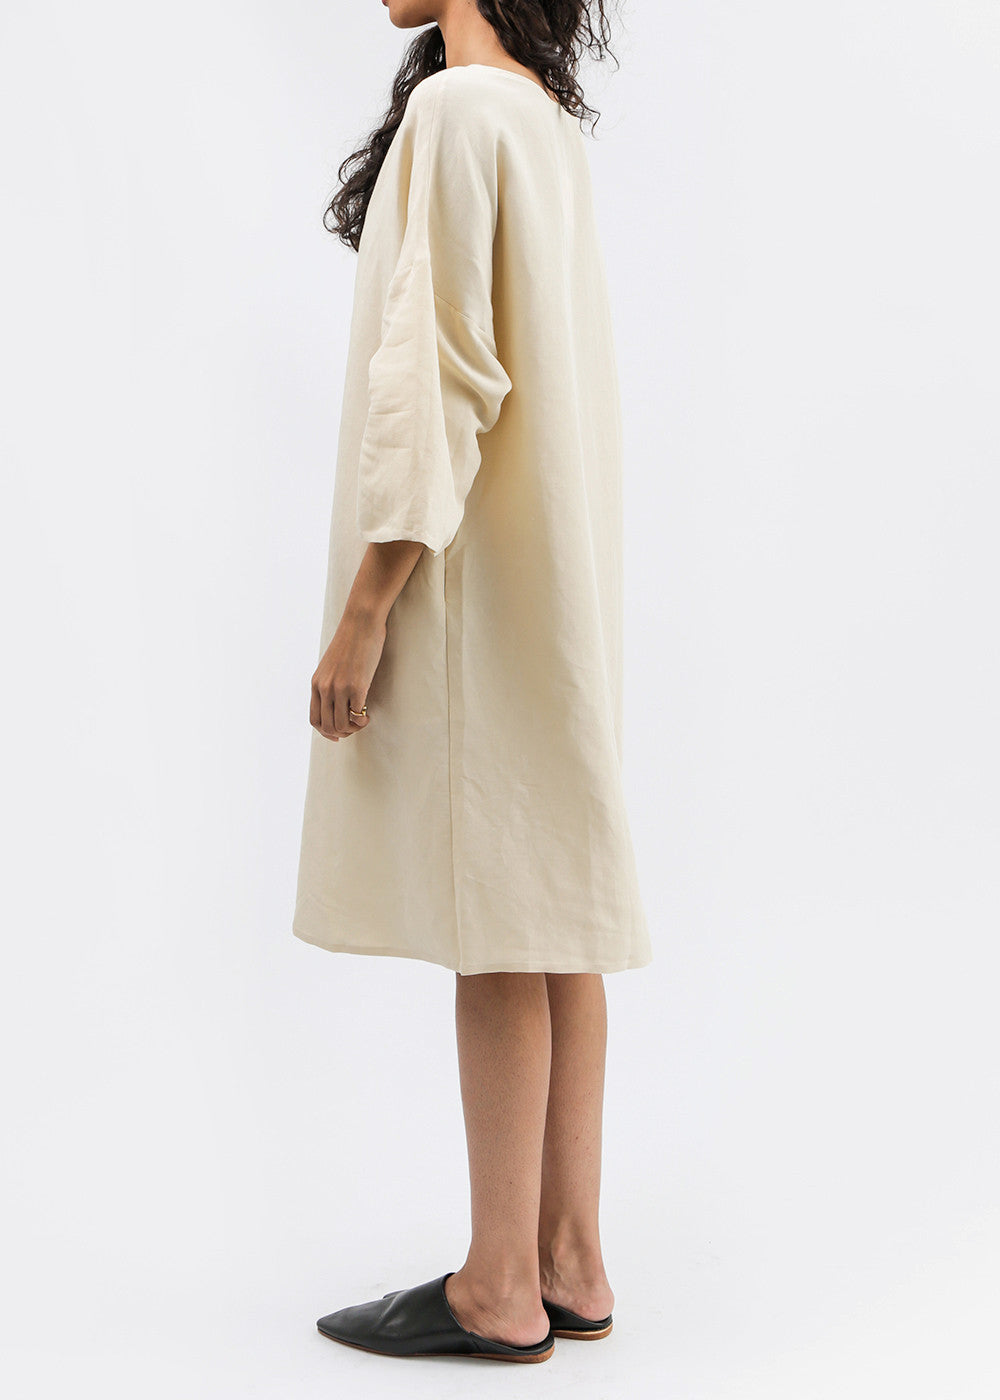 Kaarem Phoenix 3/4 Sleeve Boatneck Dress — Shop sustainable fashion and slow fashion at New Classics Studios